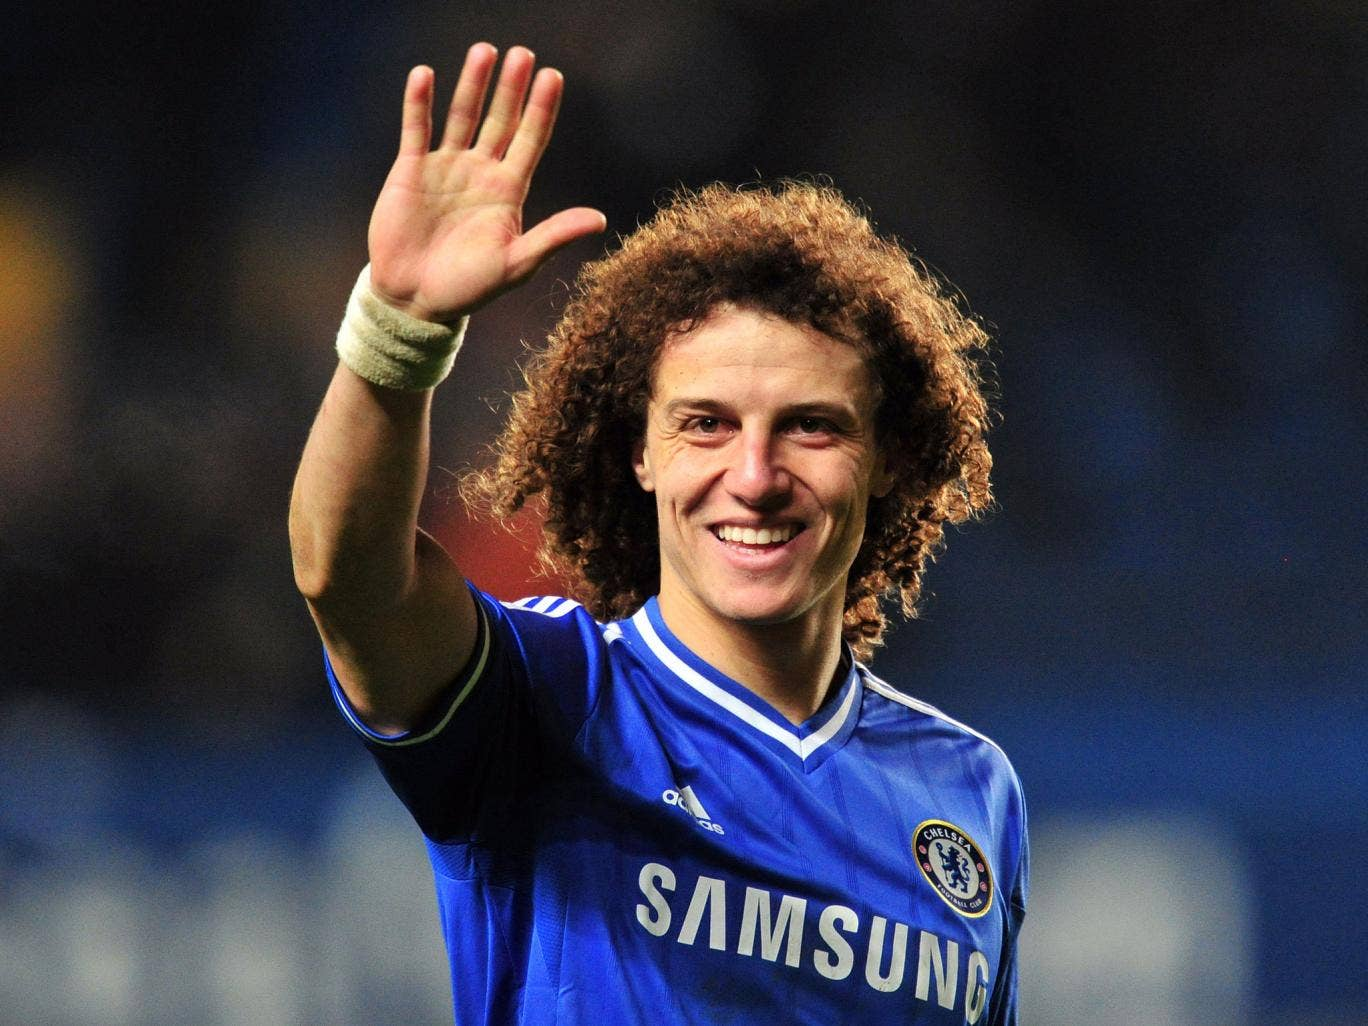 David Luiz has been linked with a move to Barcelona after he claimed to turn down a transfer in the summer